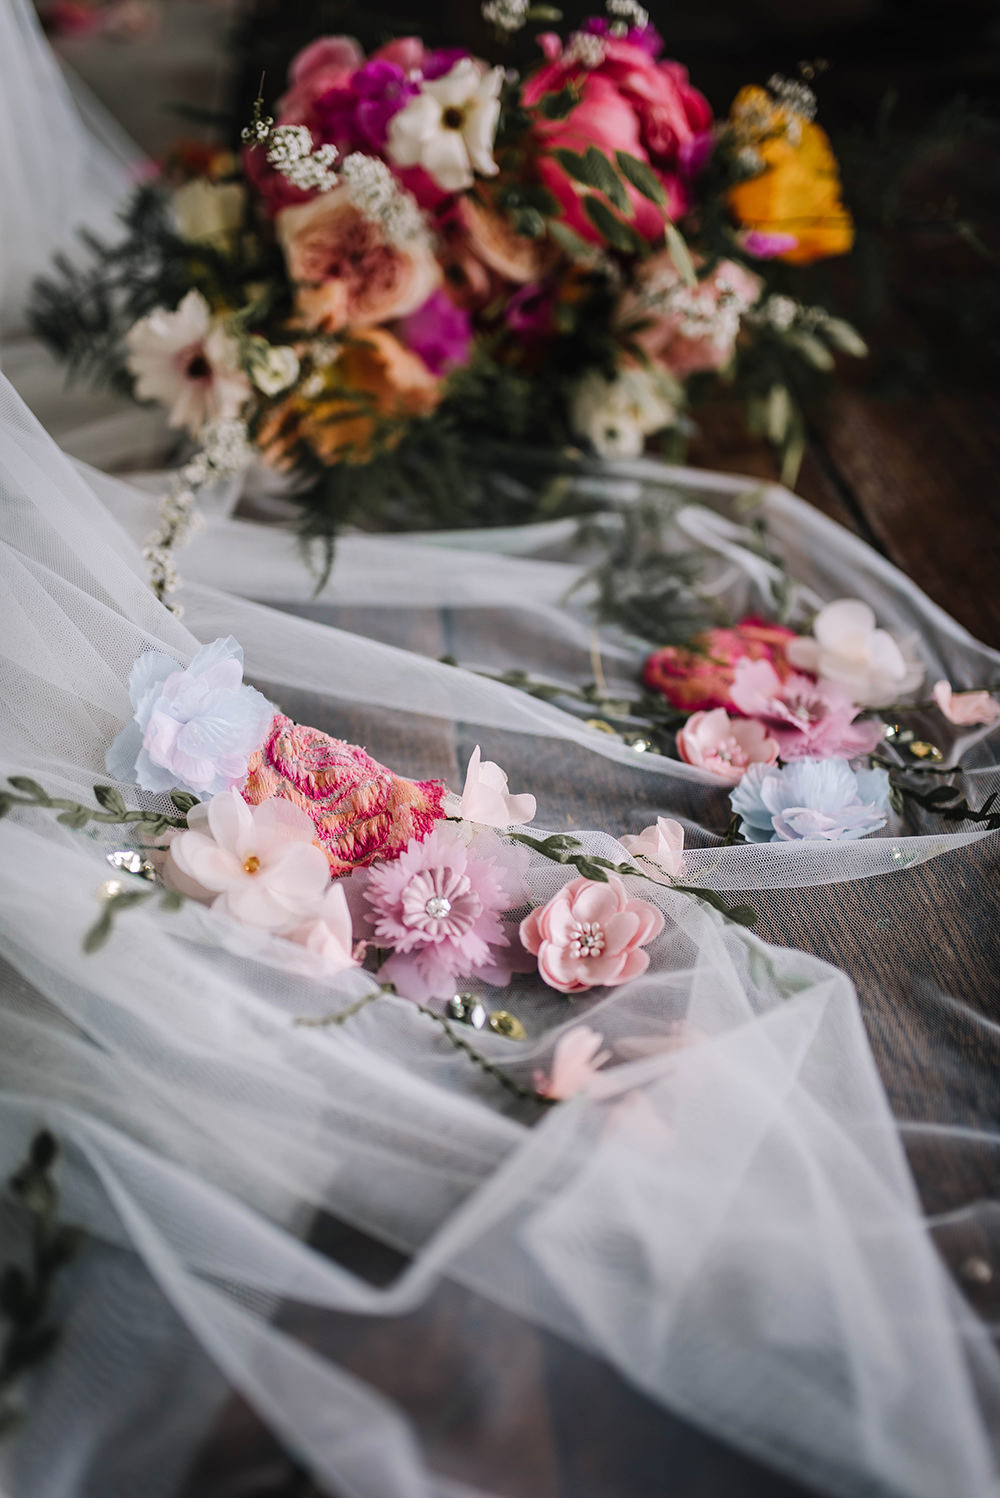 Bride Bridal Veil Embroidered Flowers Coral Floral Wedding Ideas Birgitta Zoutman Photography